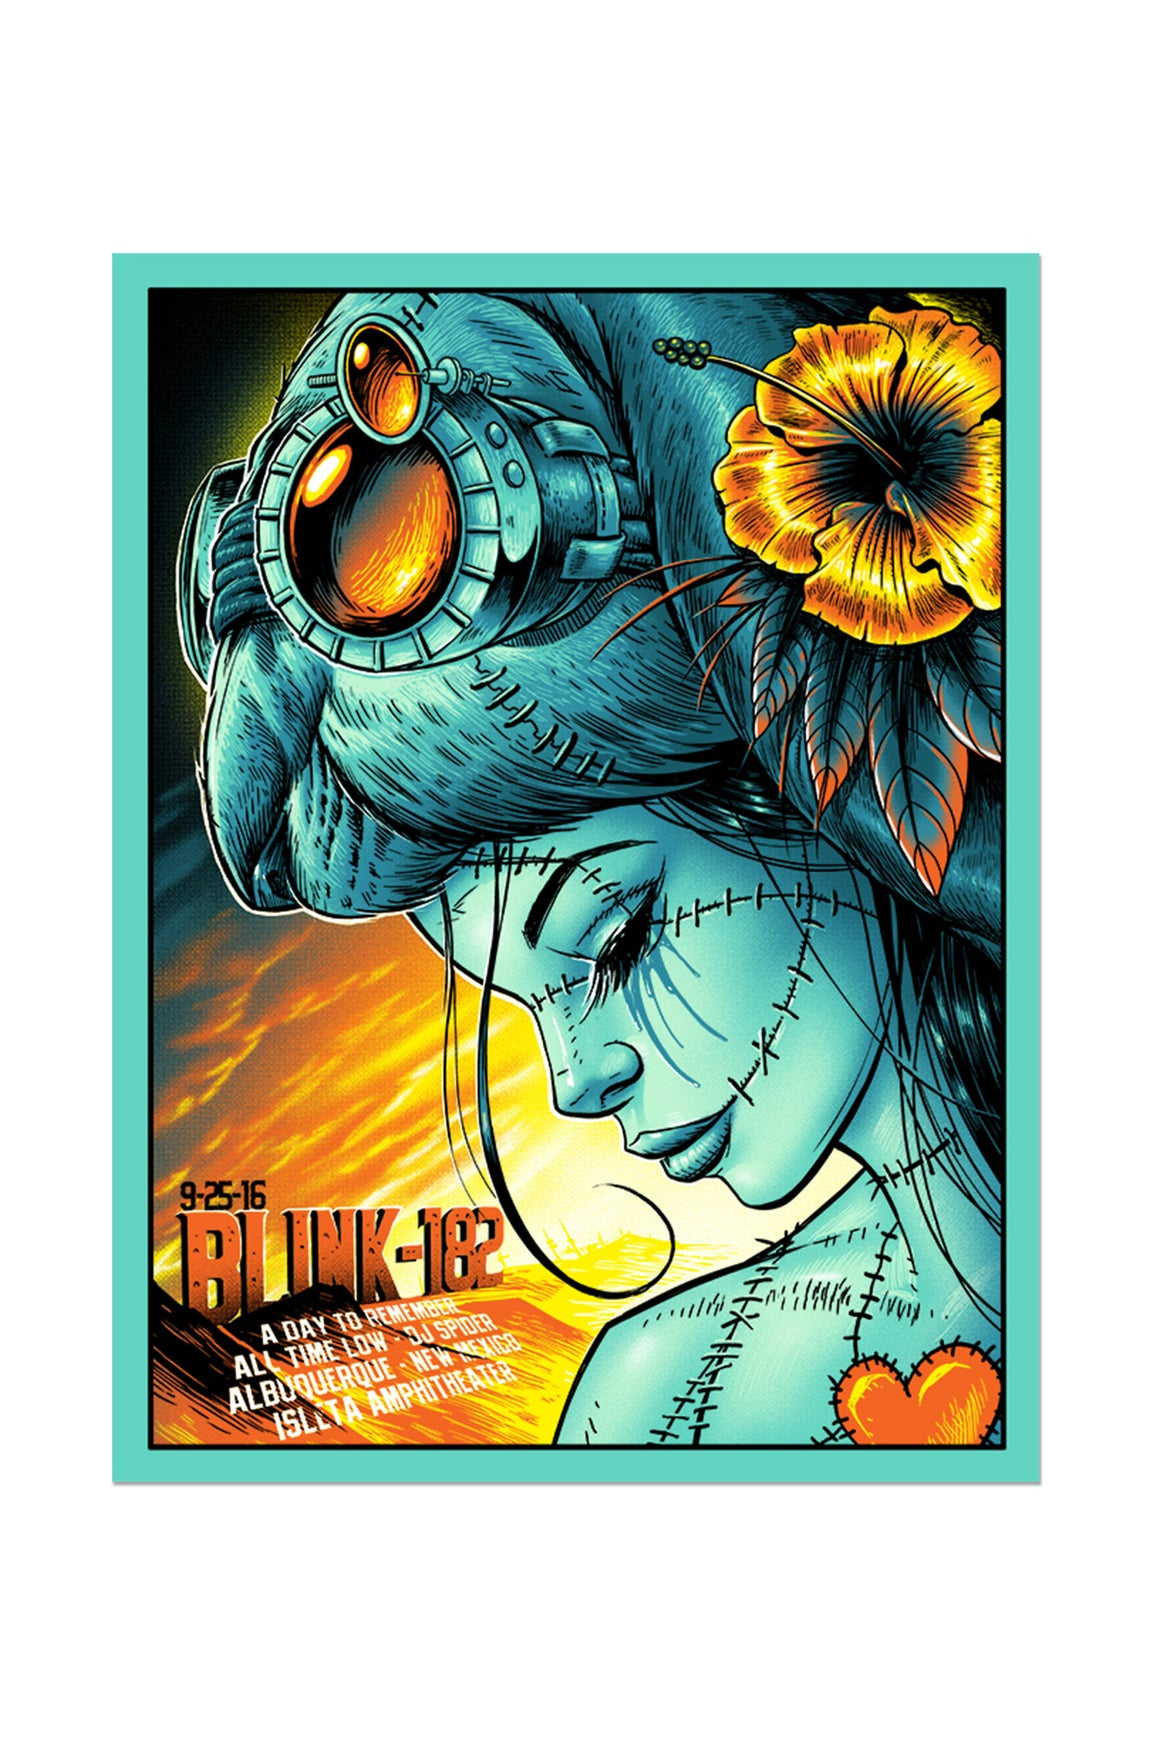 blink-182 9/25/2016 Albuquerque, NM Event Poster